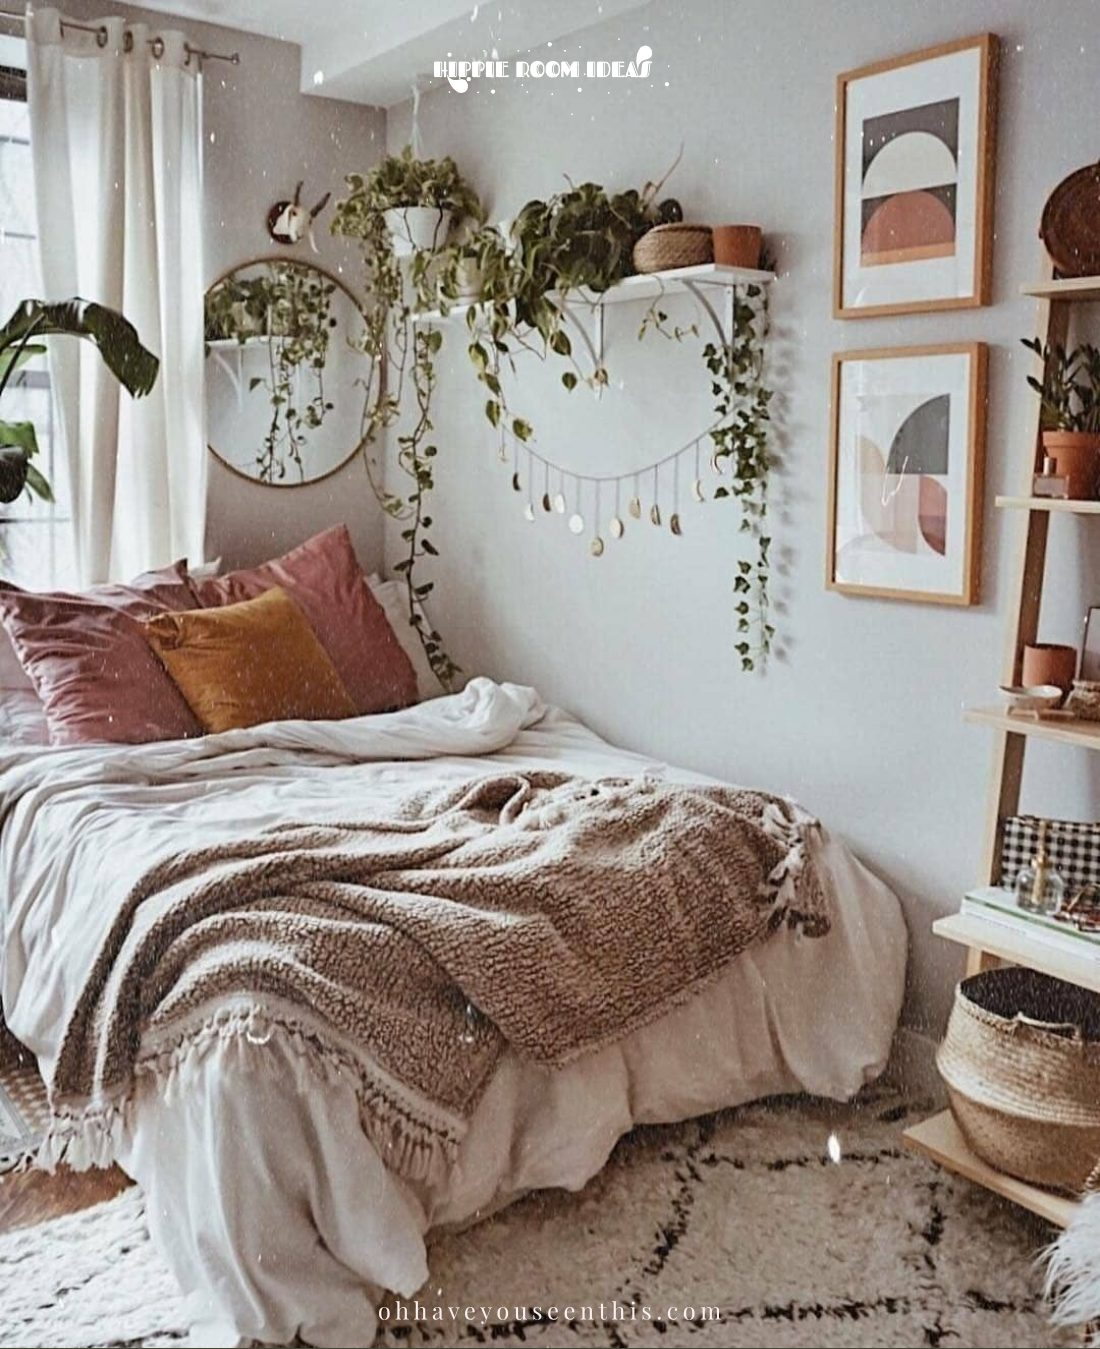 9 Most Popular Hippie Room Ideas in 99 - The Good Luck Duck